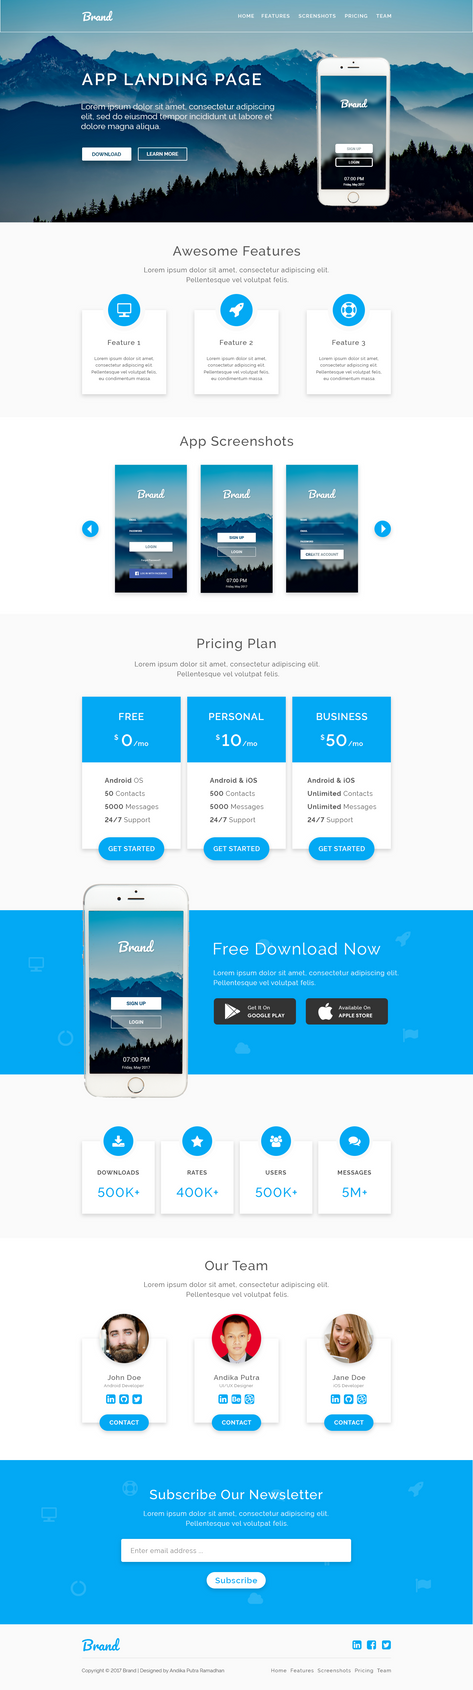 Mobile App Launching Landing Page Design by andikamelodiest